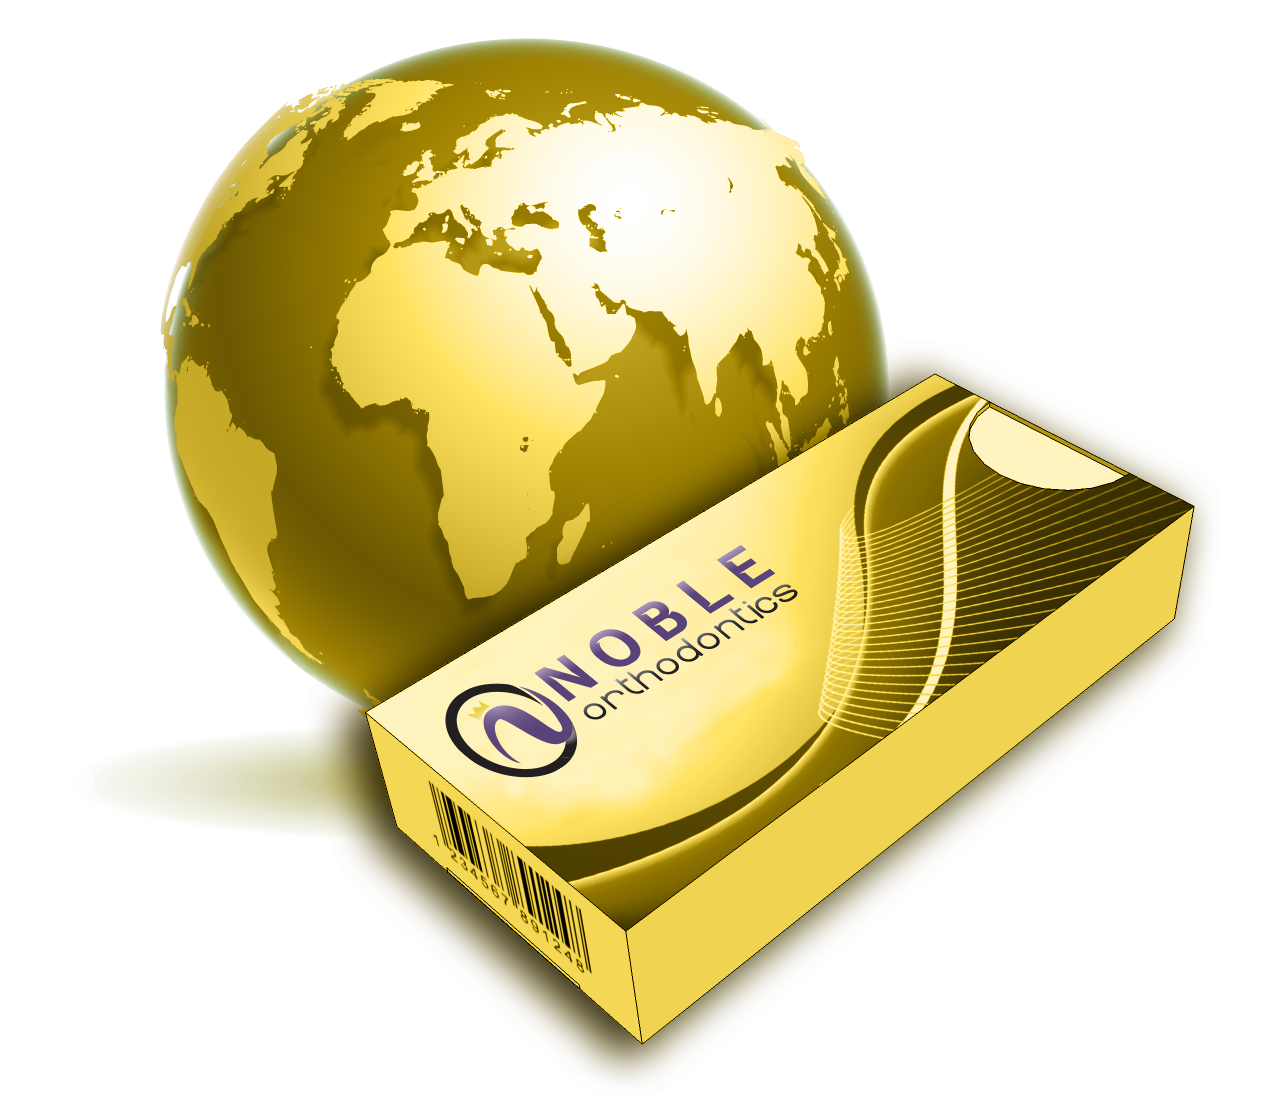 Noble Orthodontic is the gold standard.